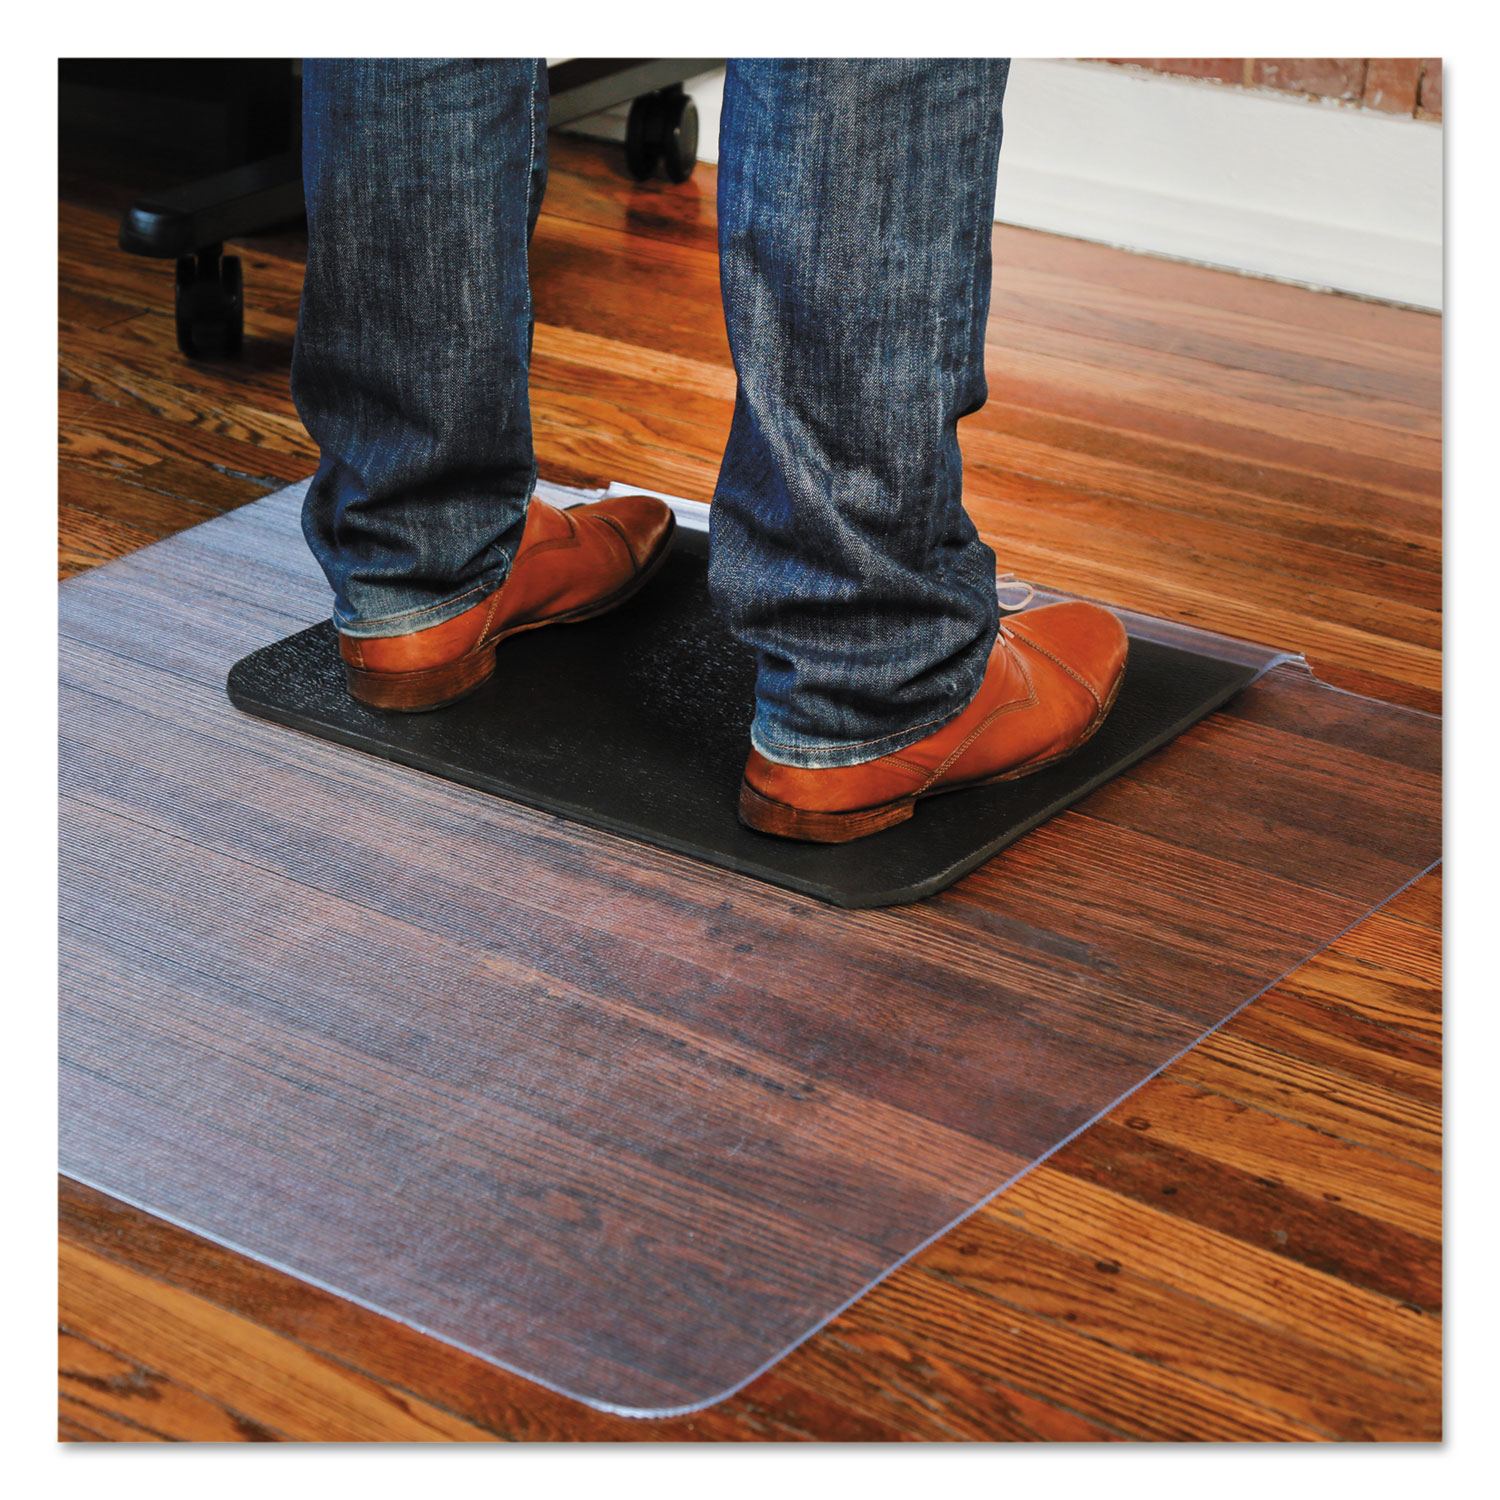 sit or stand mat for carpet or hard floors by es robbins